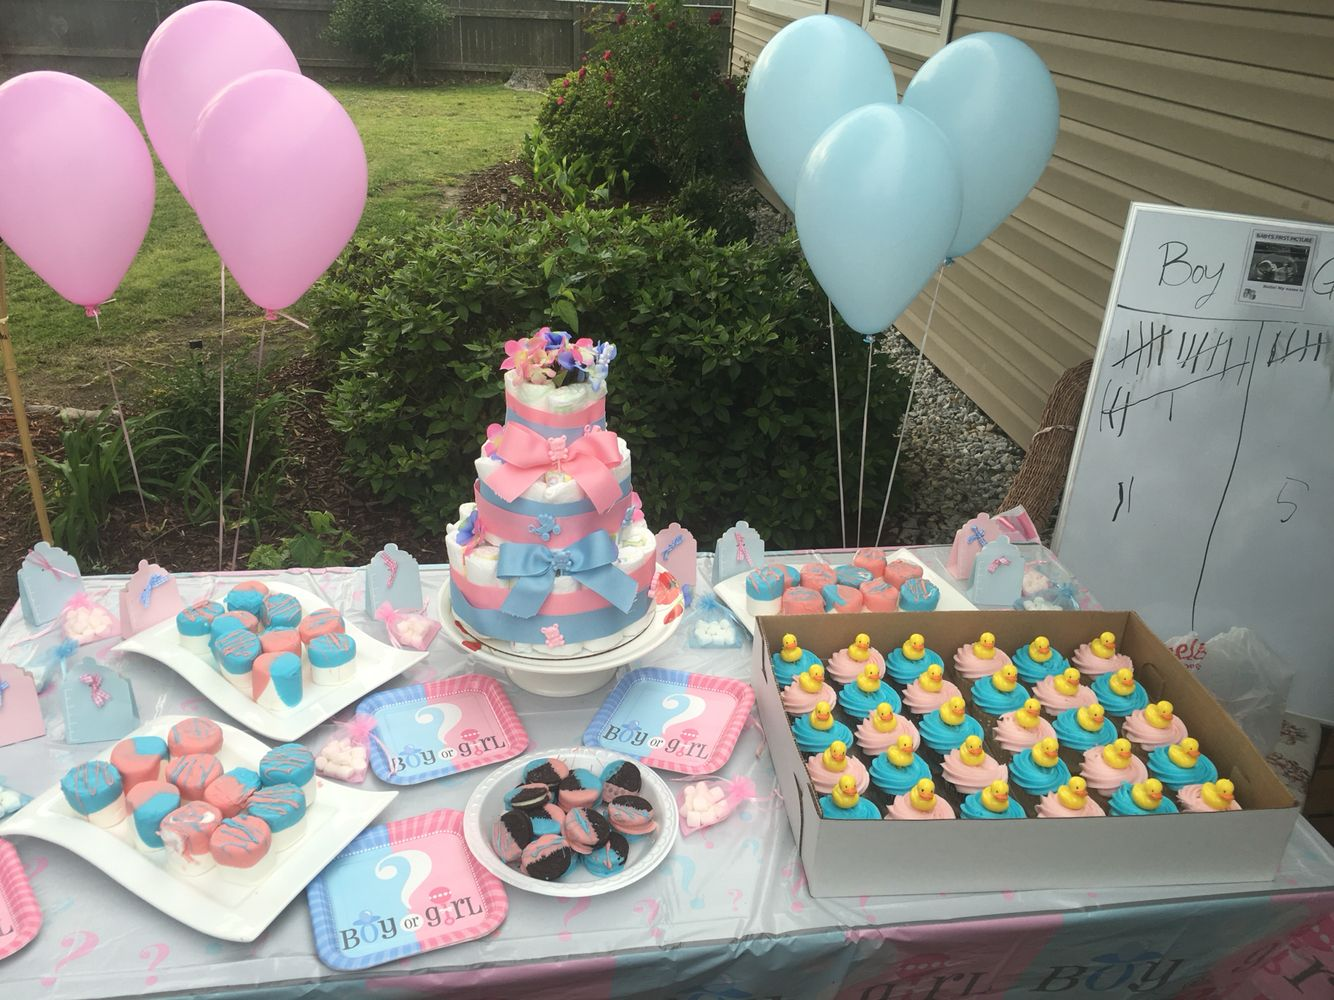 Affordable Gender reveal party Walmart decorations and